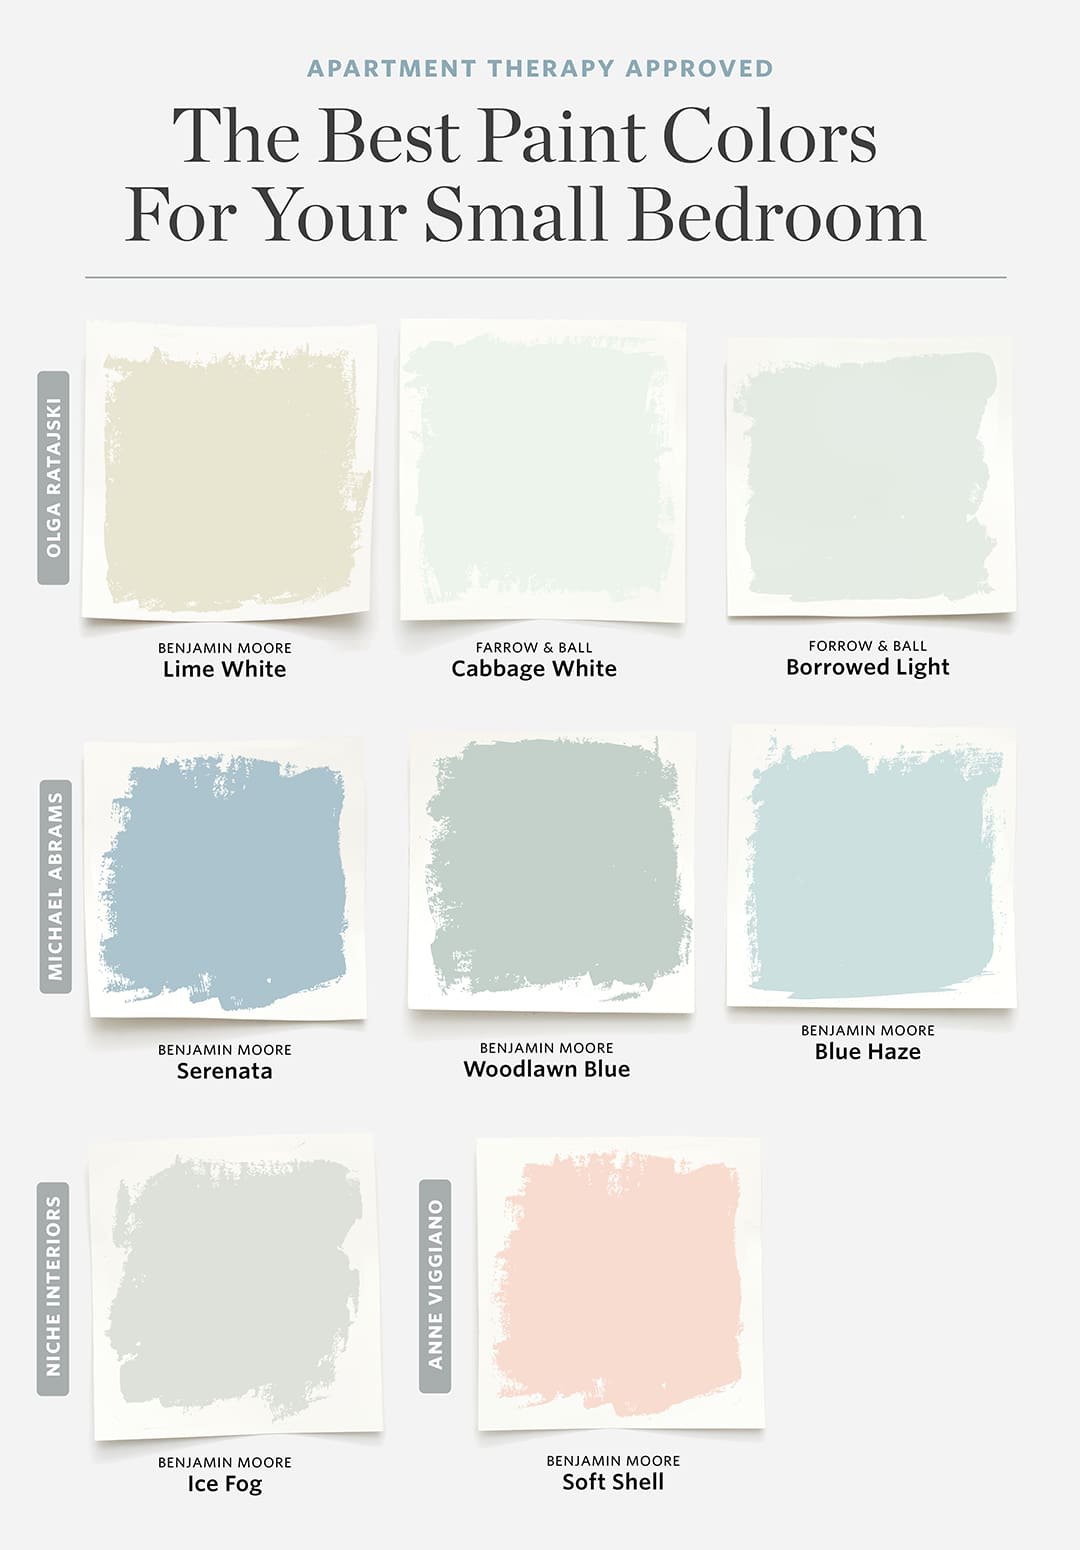 8 Paint Colors That Always Work for a Small Bedroom | Apartment Therapy